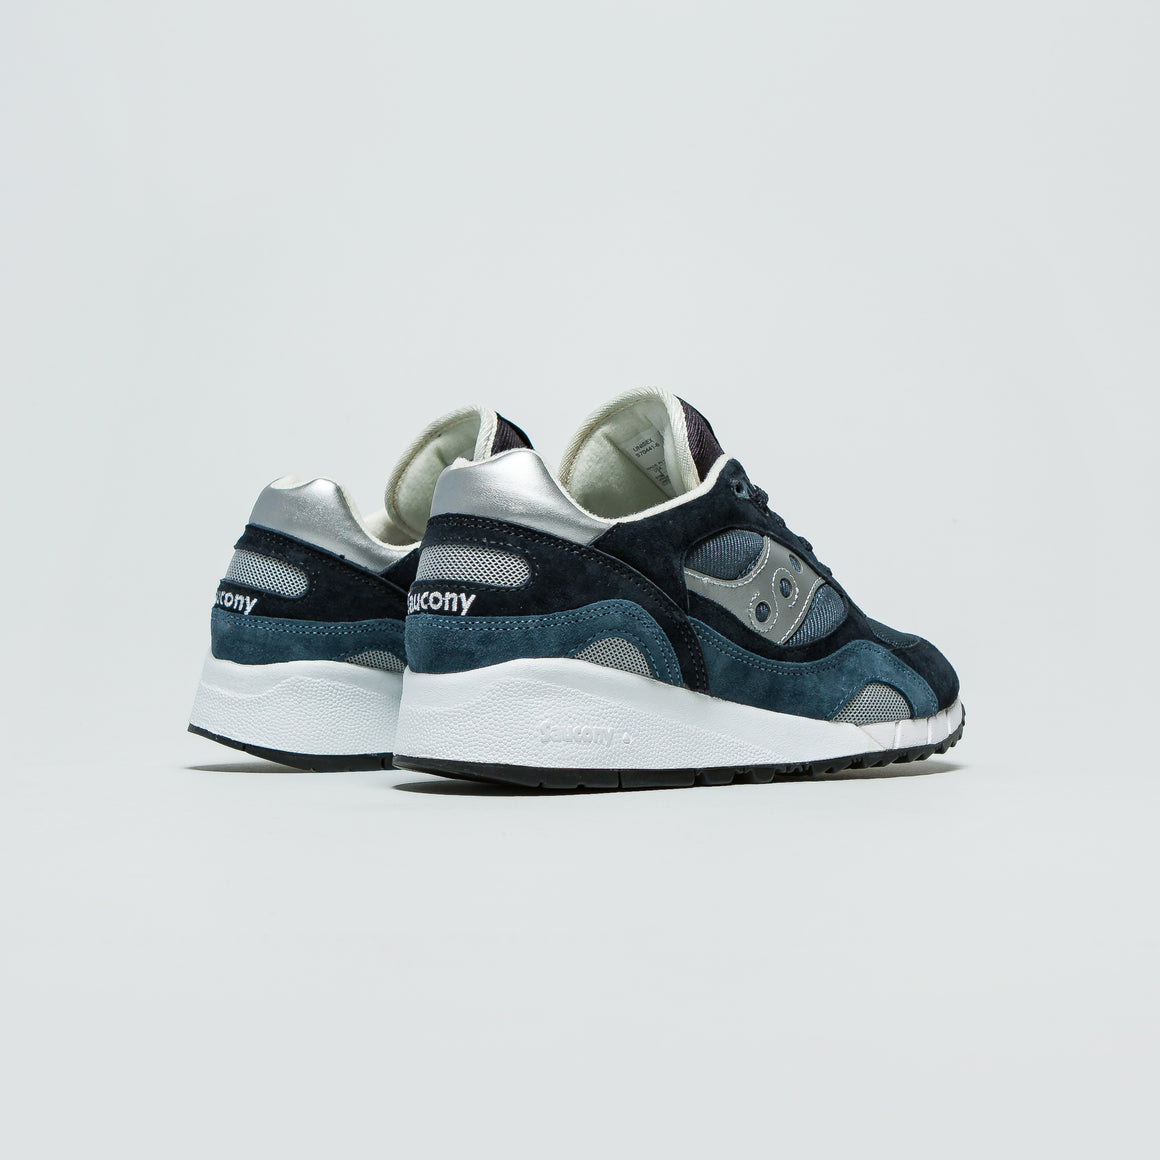 Saucony - Shadow 6000 - Navy/Silver - Up There